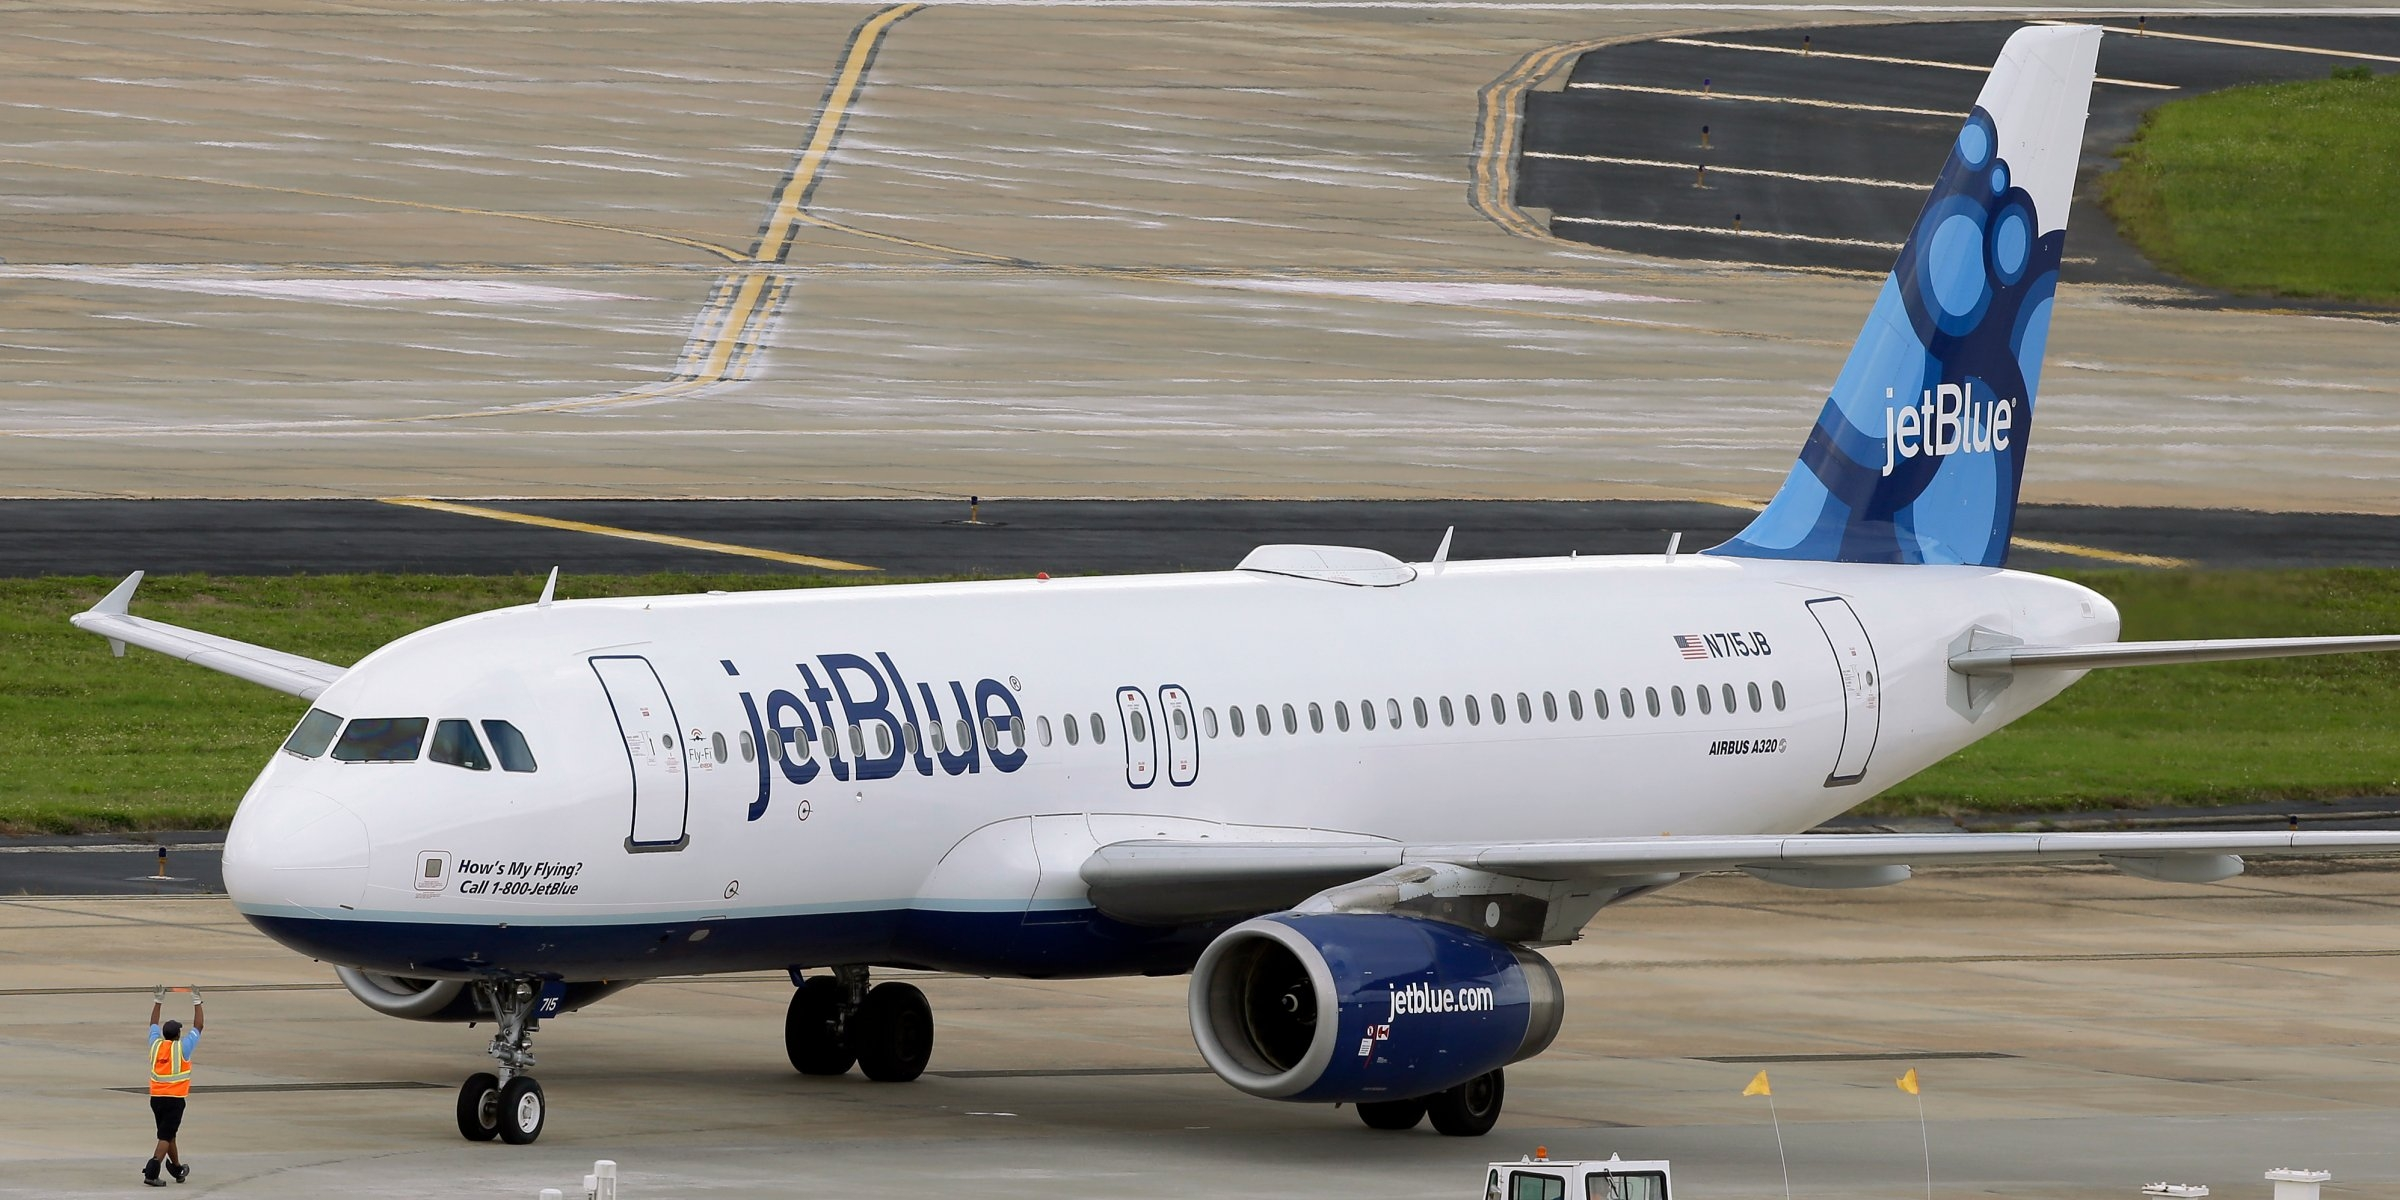 JetBlue flight mistakenly sends hijack alert, triggering huge scare at JFK airport